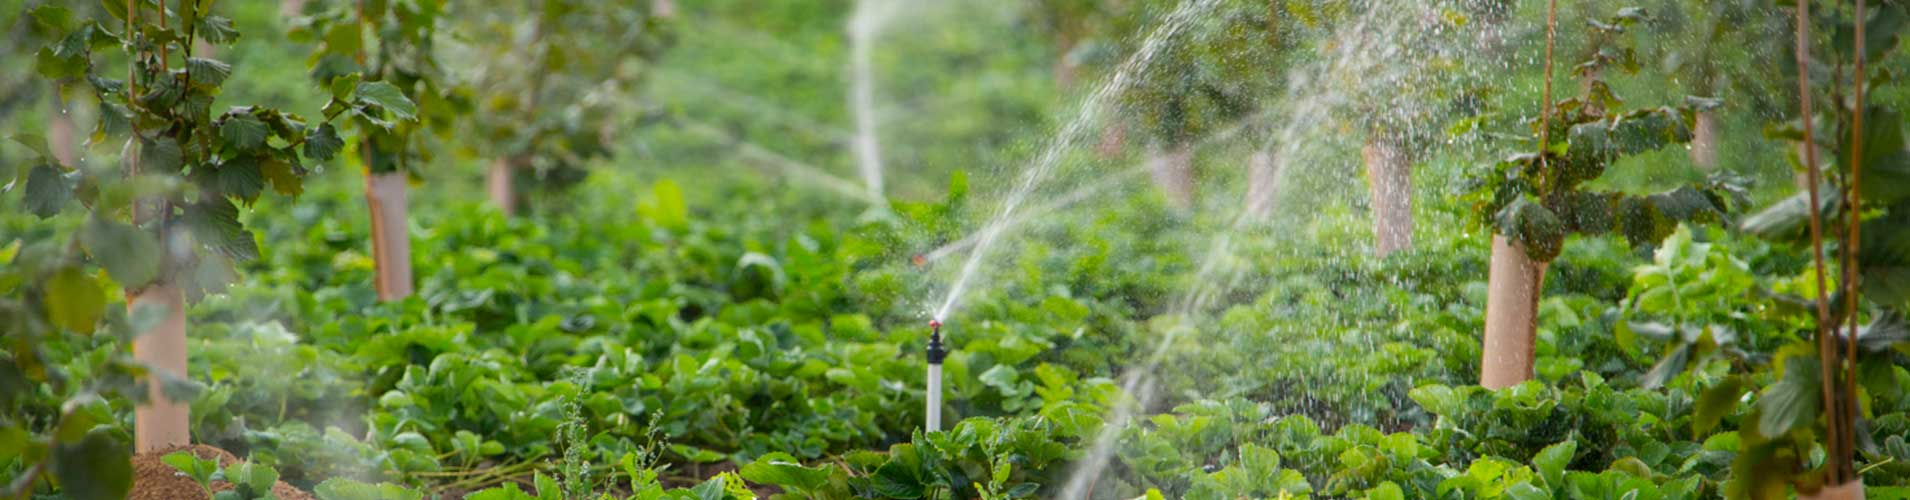 Orchard Sprinklers